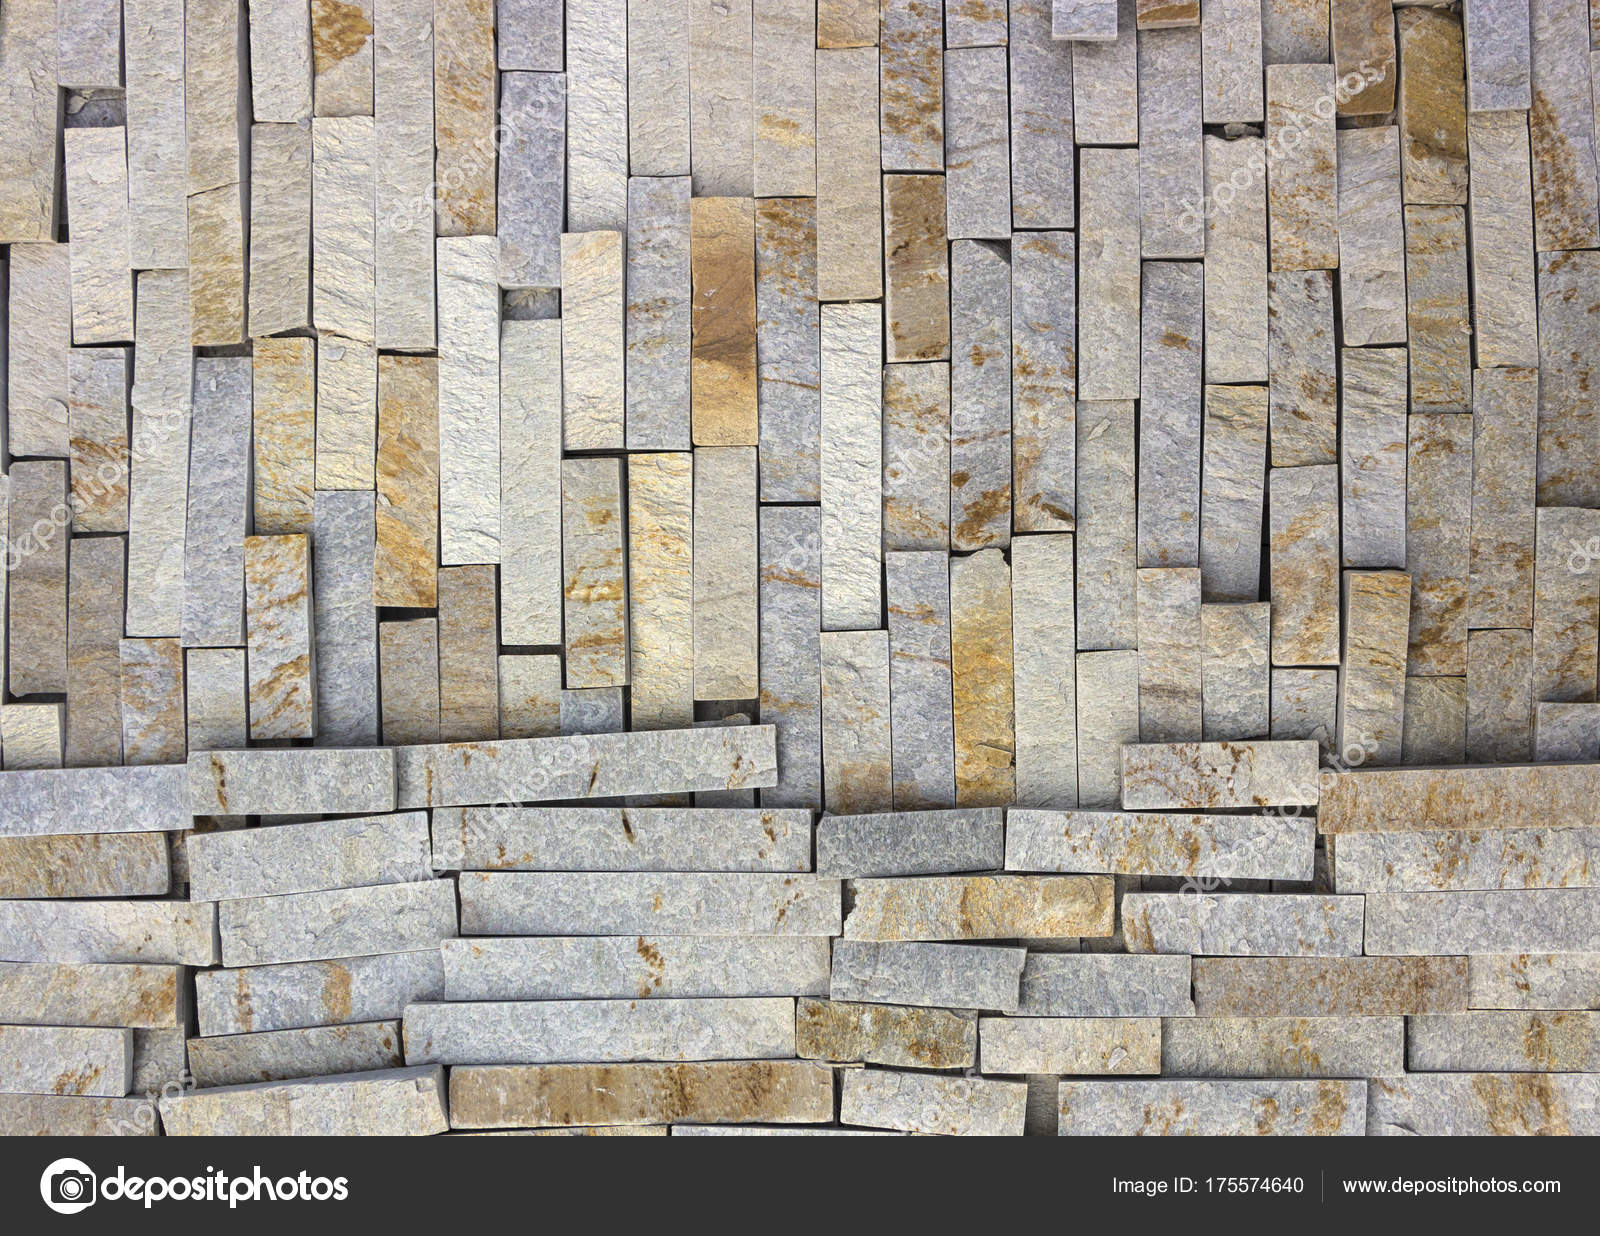 Marble Texture Decorative Brick, Wall Tiles Made Of Natural Stone. Building  Materials. U2014